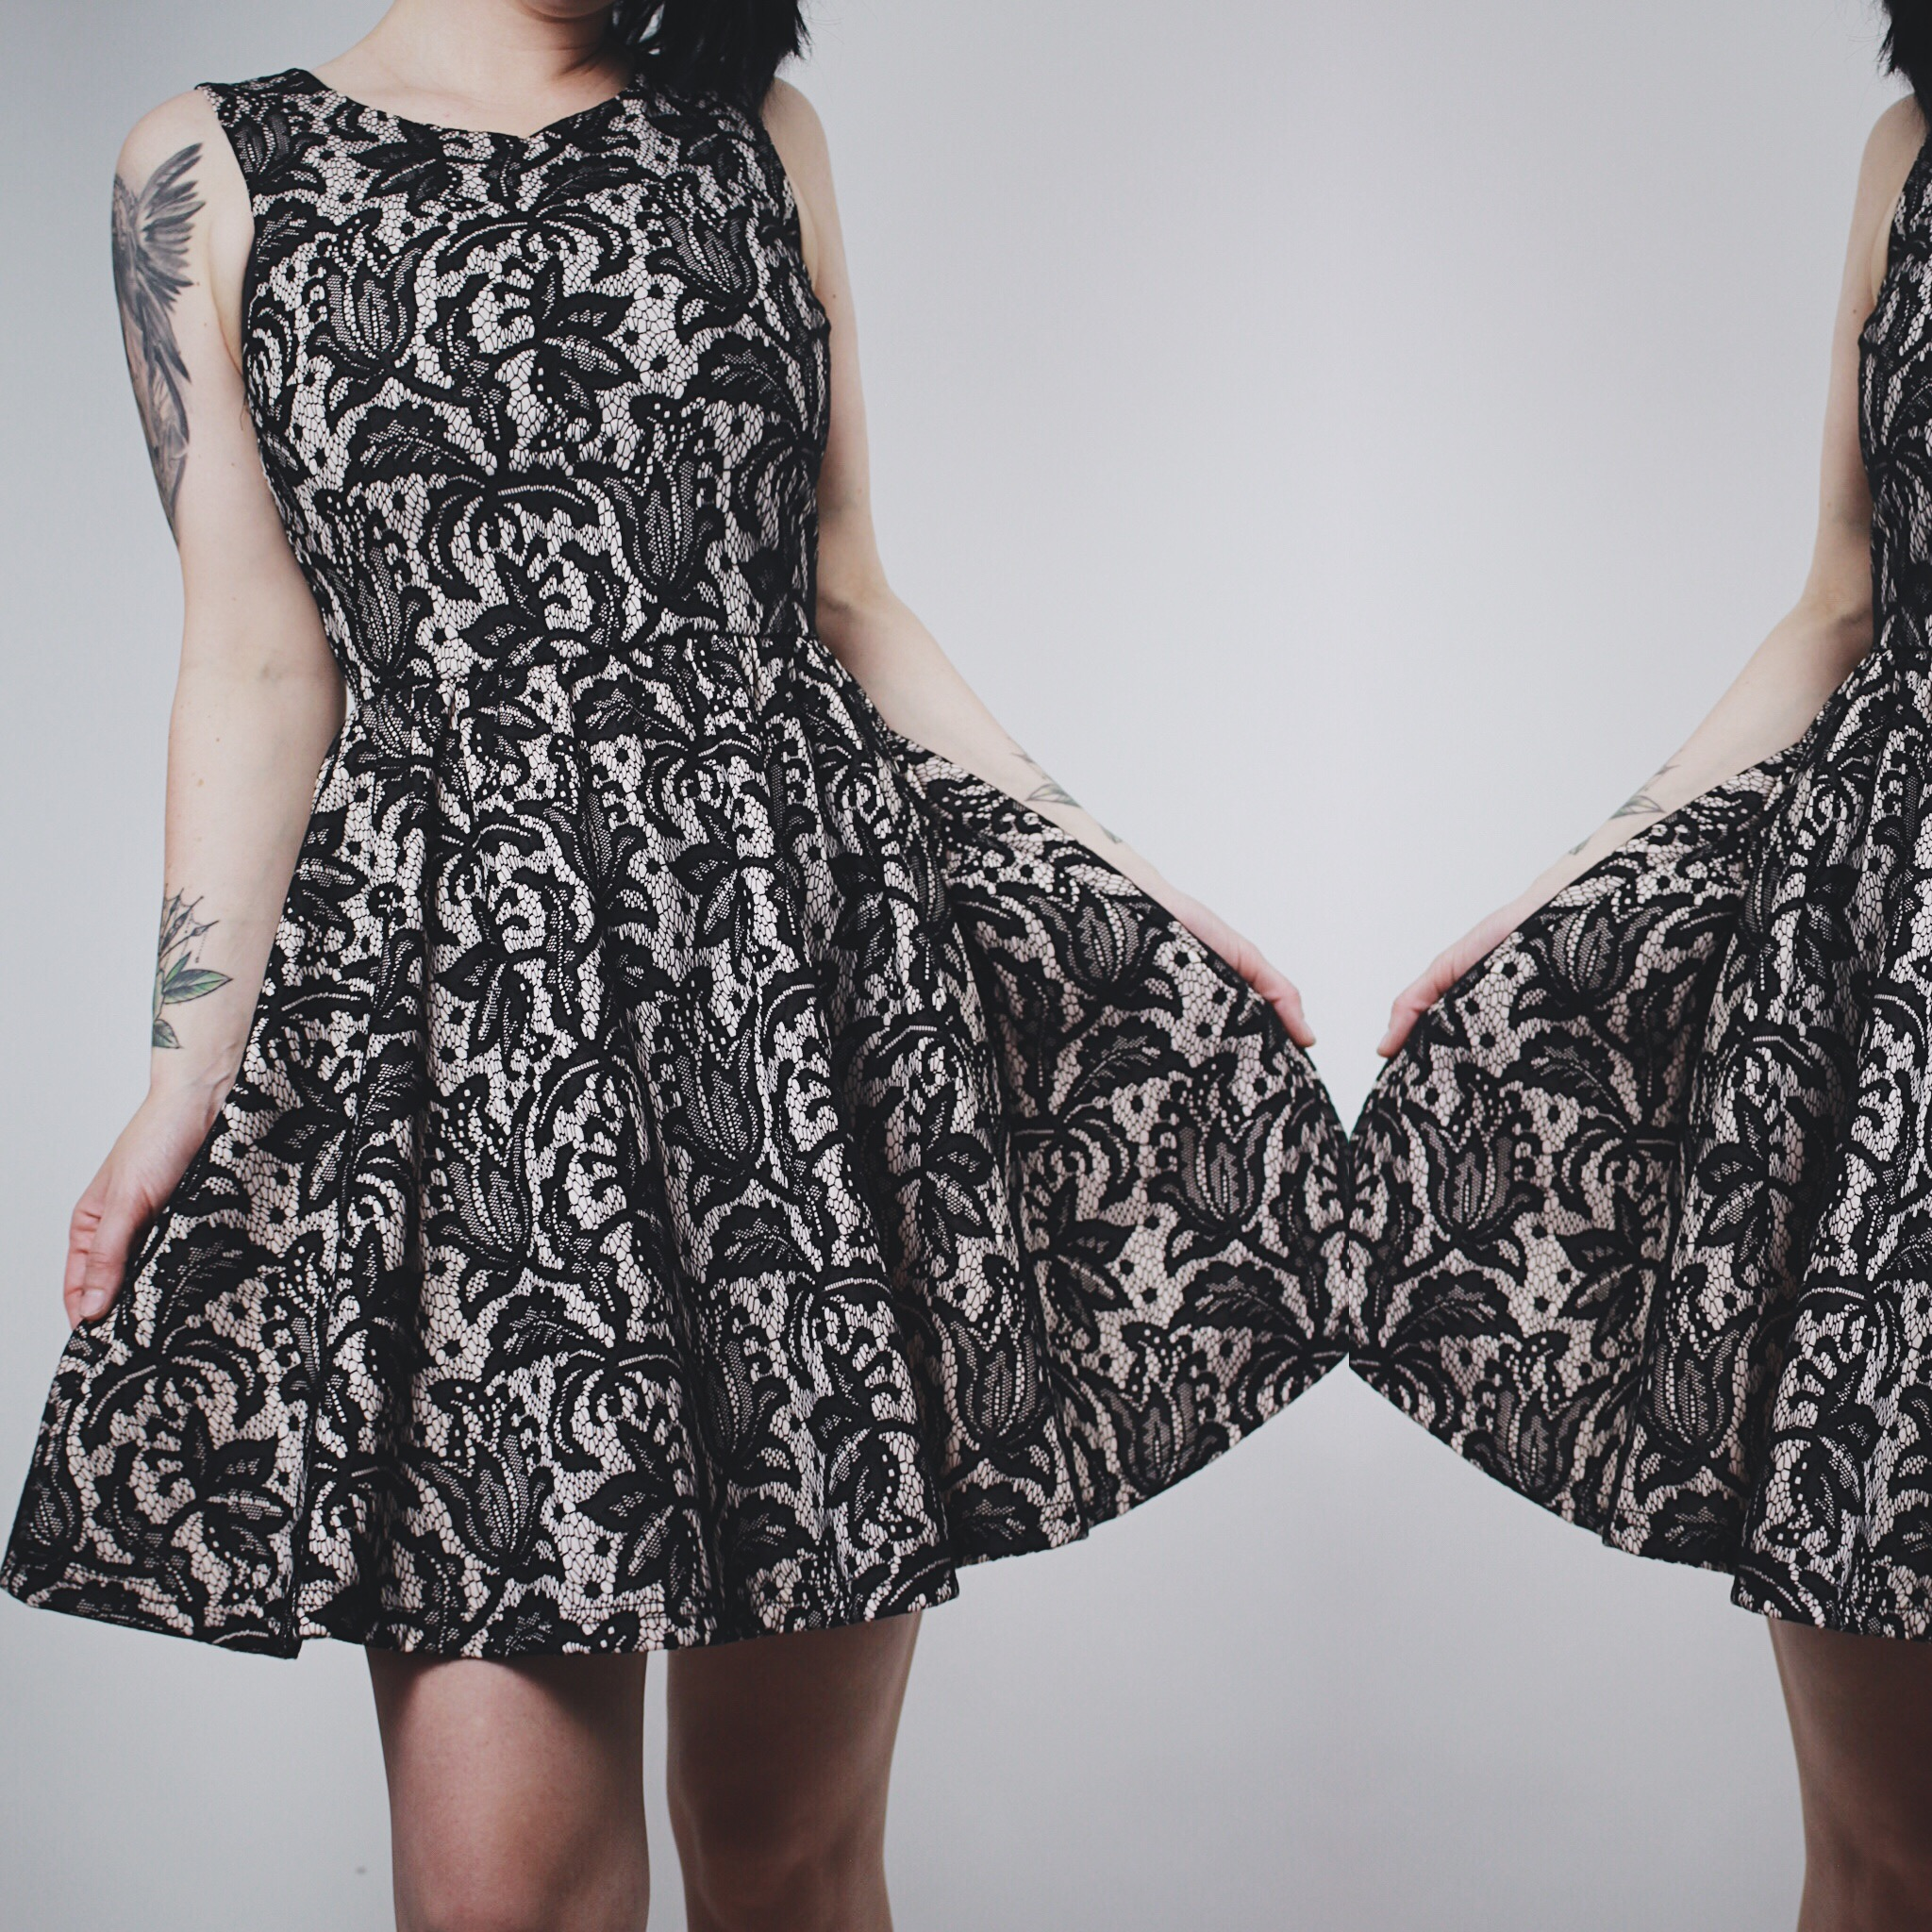 Available 50s Inspired Black And Blush Lace Pinup Day Dress From Last Rites